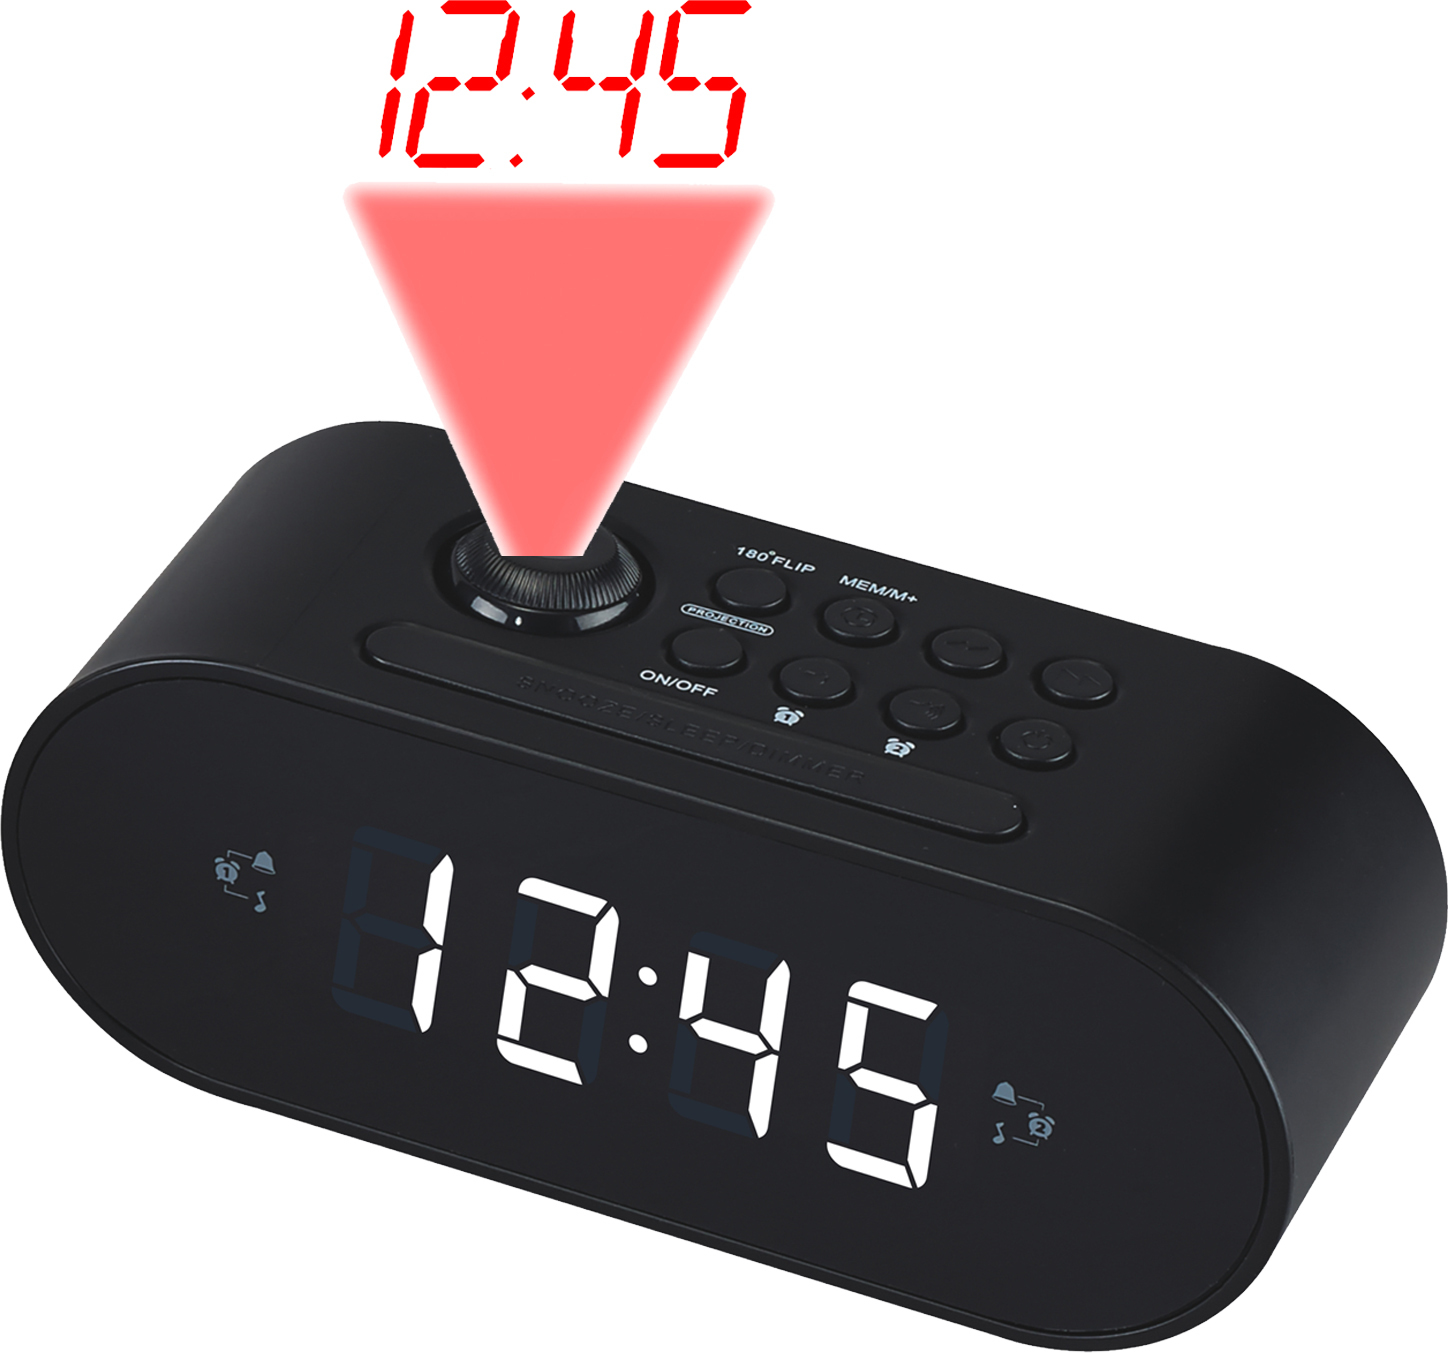 Denver Electronics CRP-717 Clock Digital Black radio